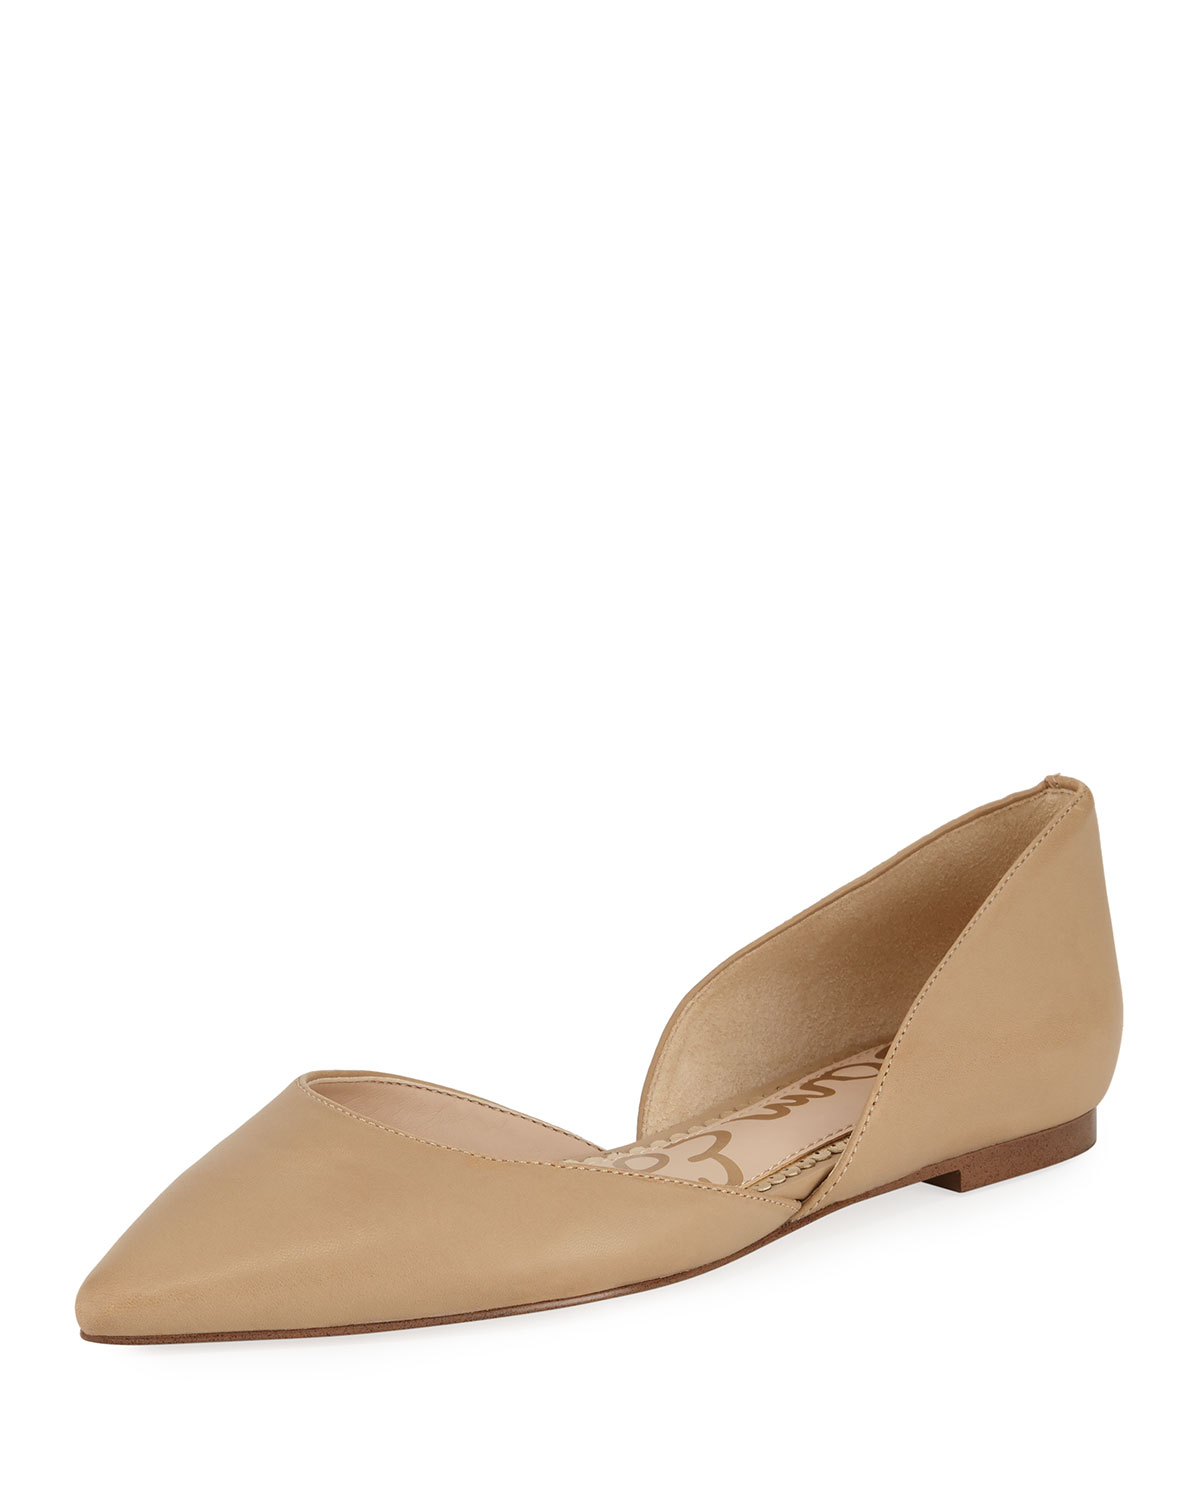 5de9357148d38 Sam Edelman Rodney Pointed-Toe Leather Flats